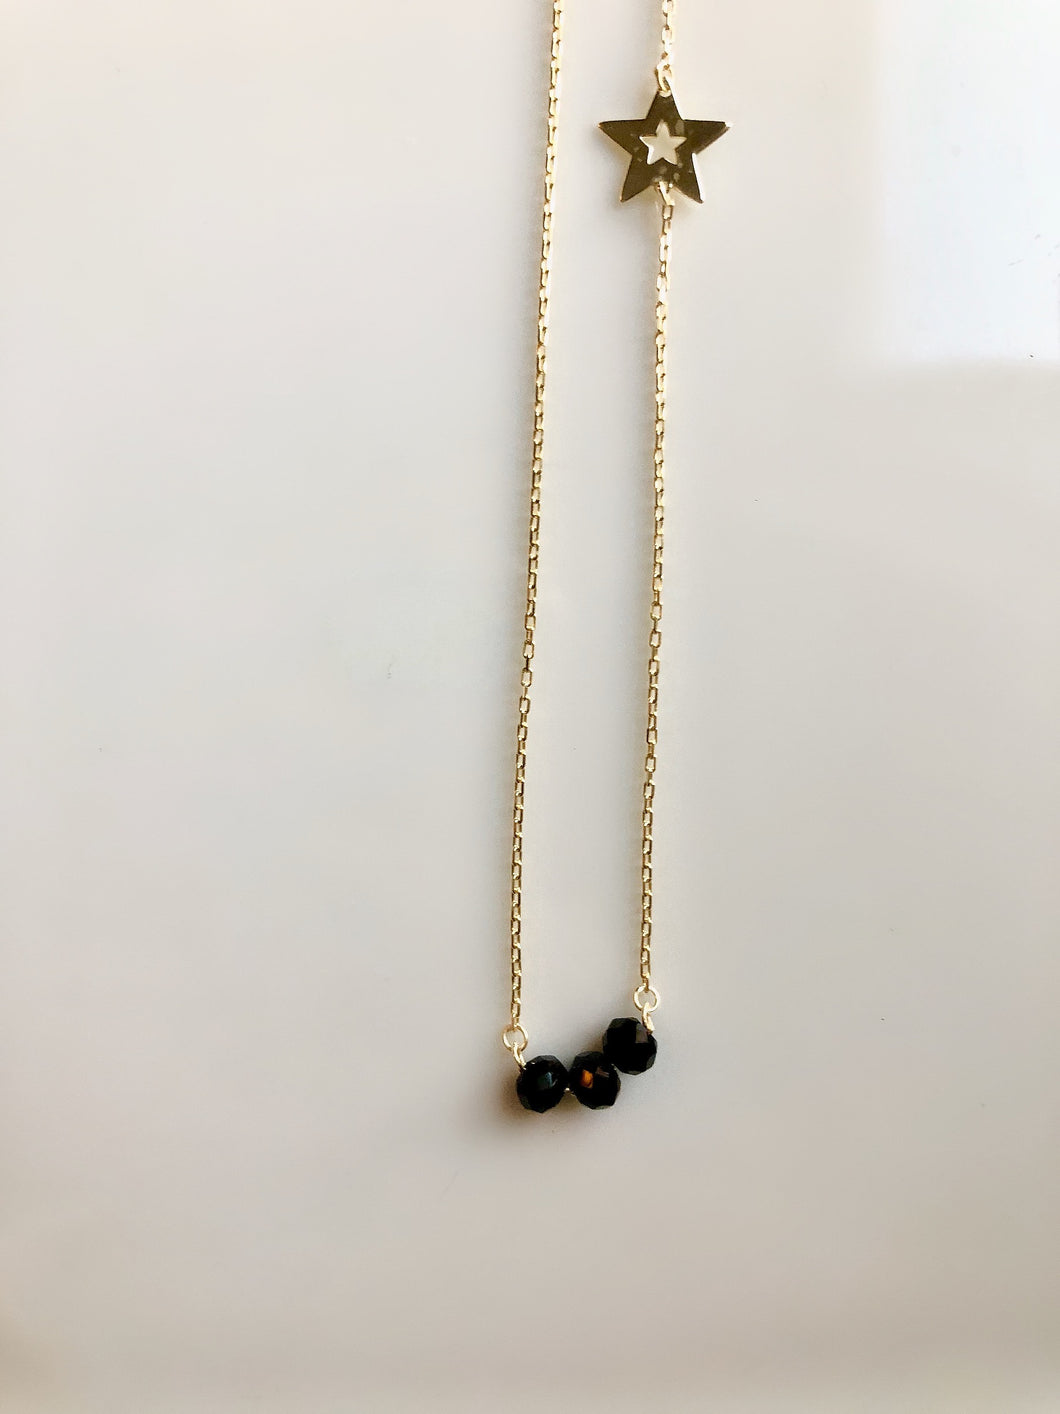 Sterling Silver Gold Plated Black Bead with a Star Necklace Choker